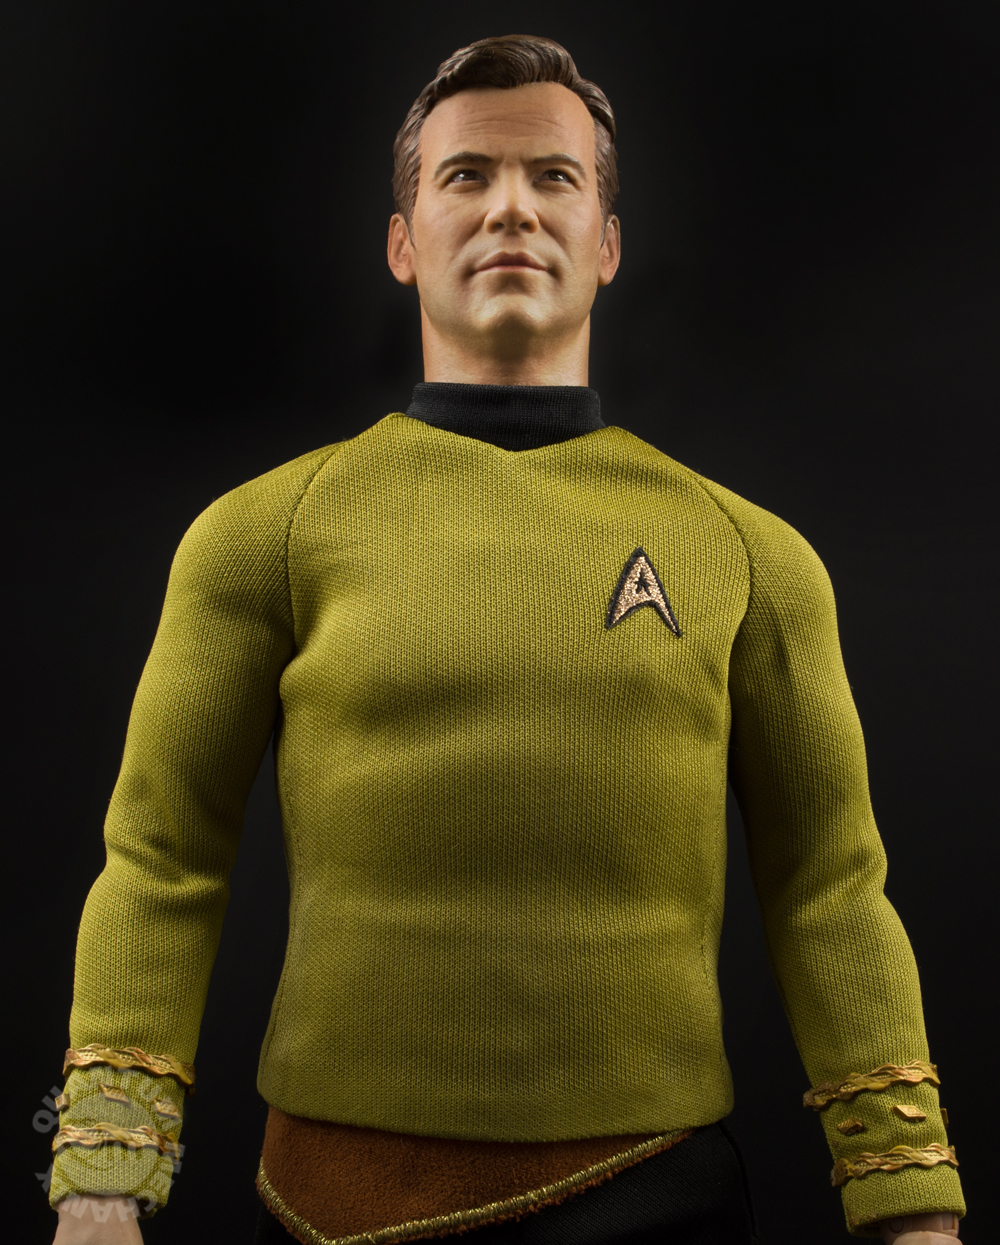 QMX Star Trek Captain Kirk Figure